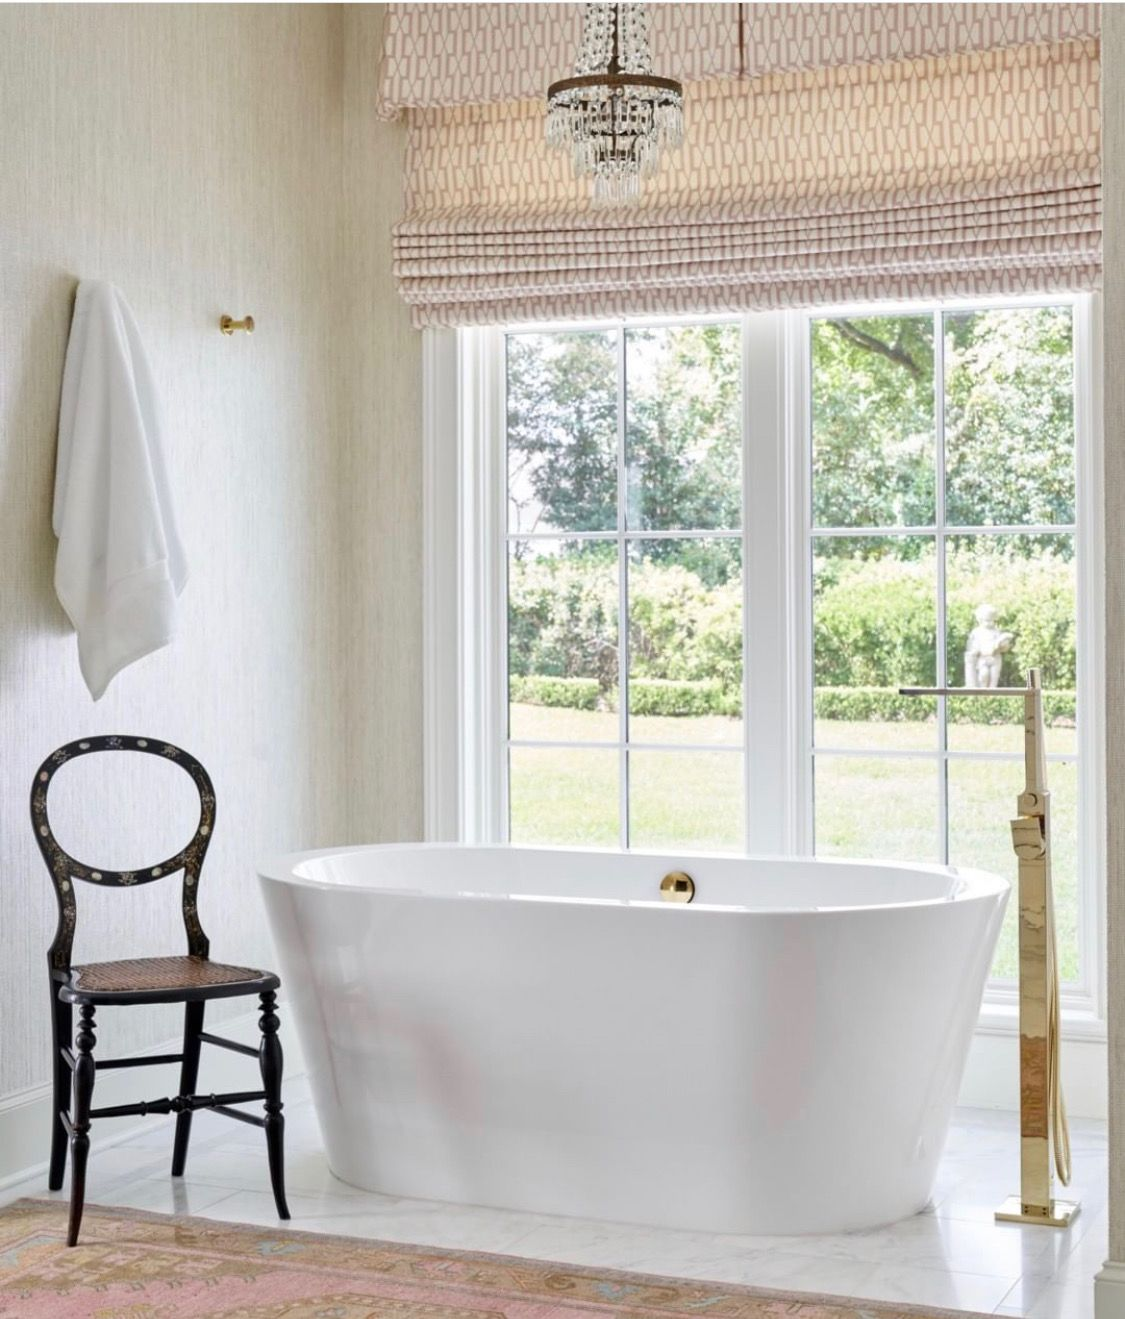 Like This Fabric But In Light Blue Or Gray For Roman Shade Over Tub Jenkins Interiors Bathroom Windows Free Standing Bath Tub Furniture Design Modern [ jpg ]